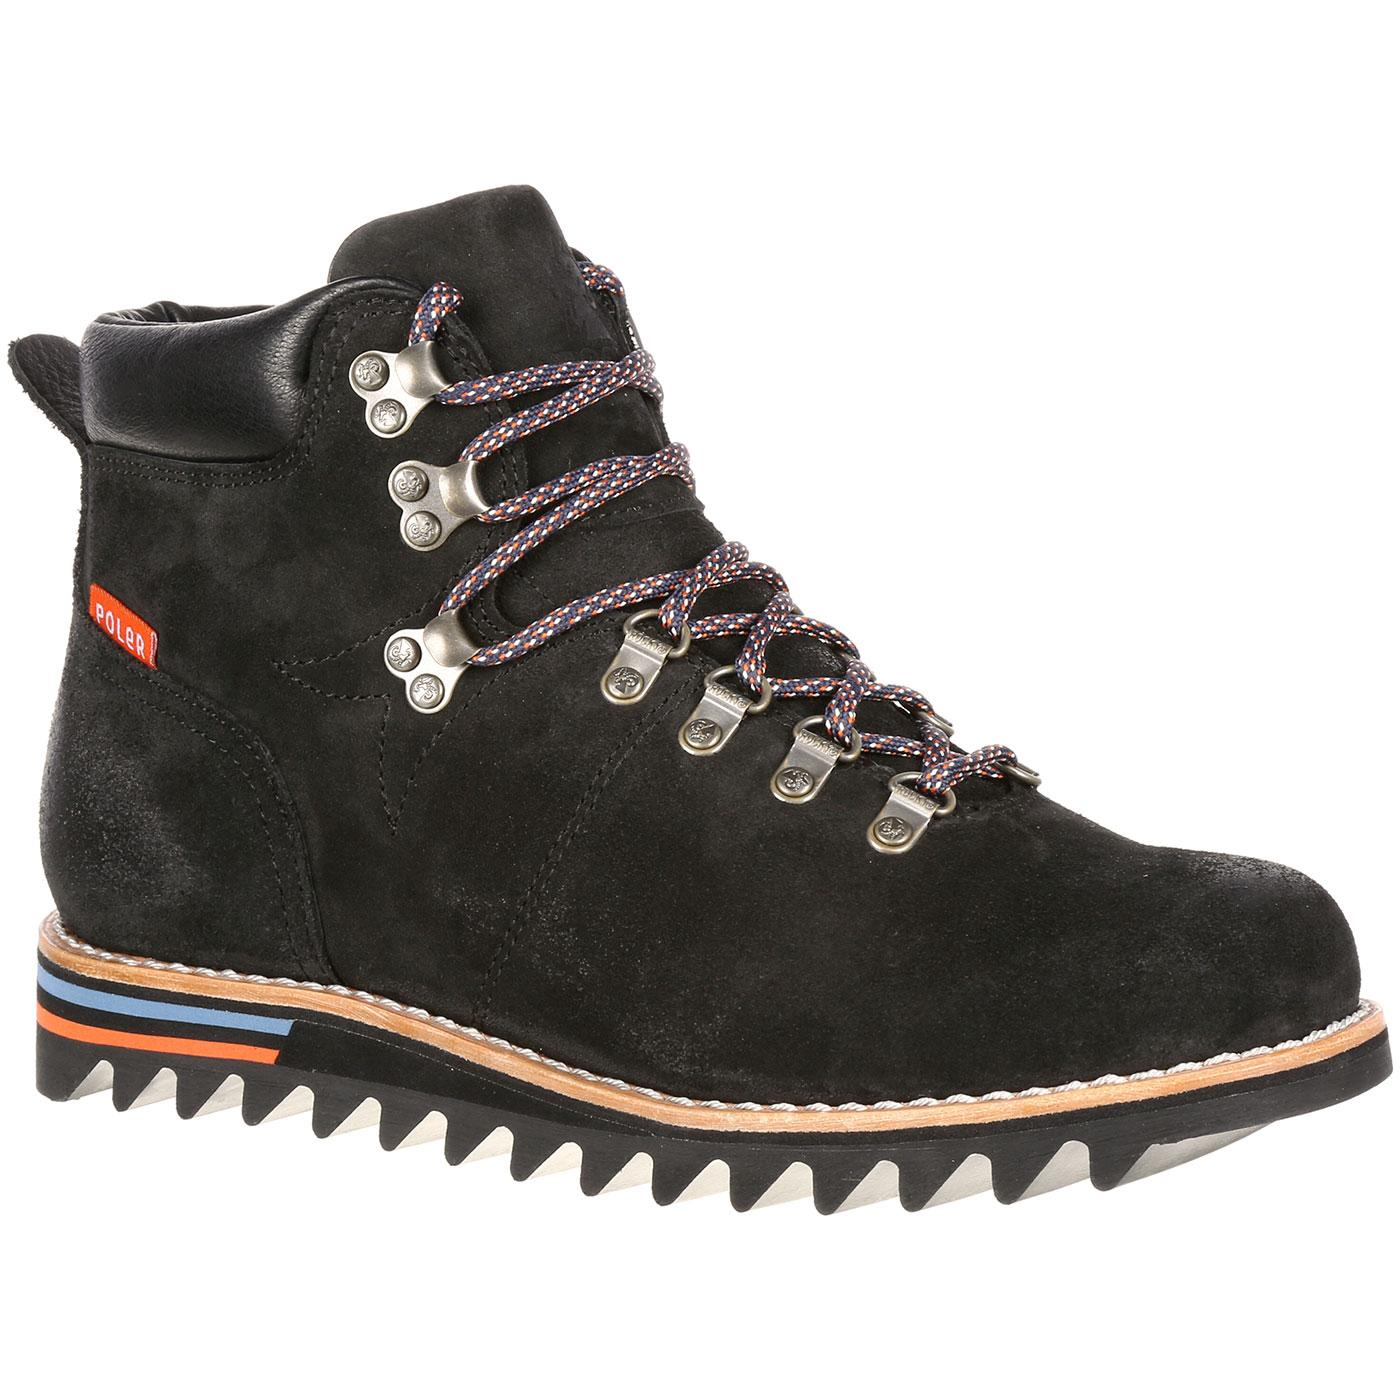 Rocky Mens X Poler Original Hiker Vibram Sole Shoe